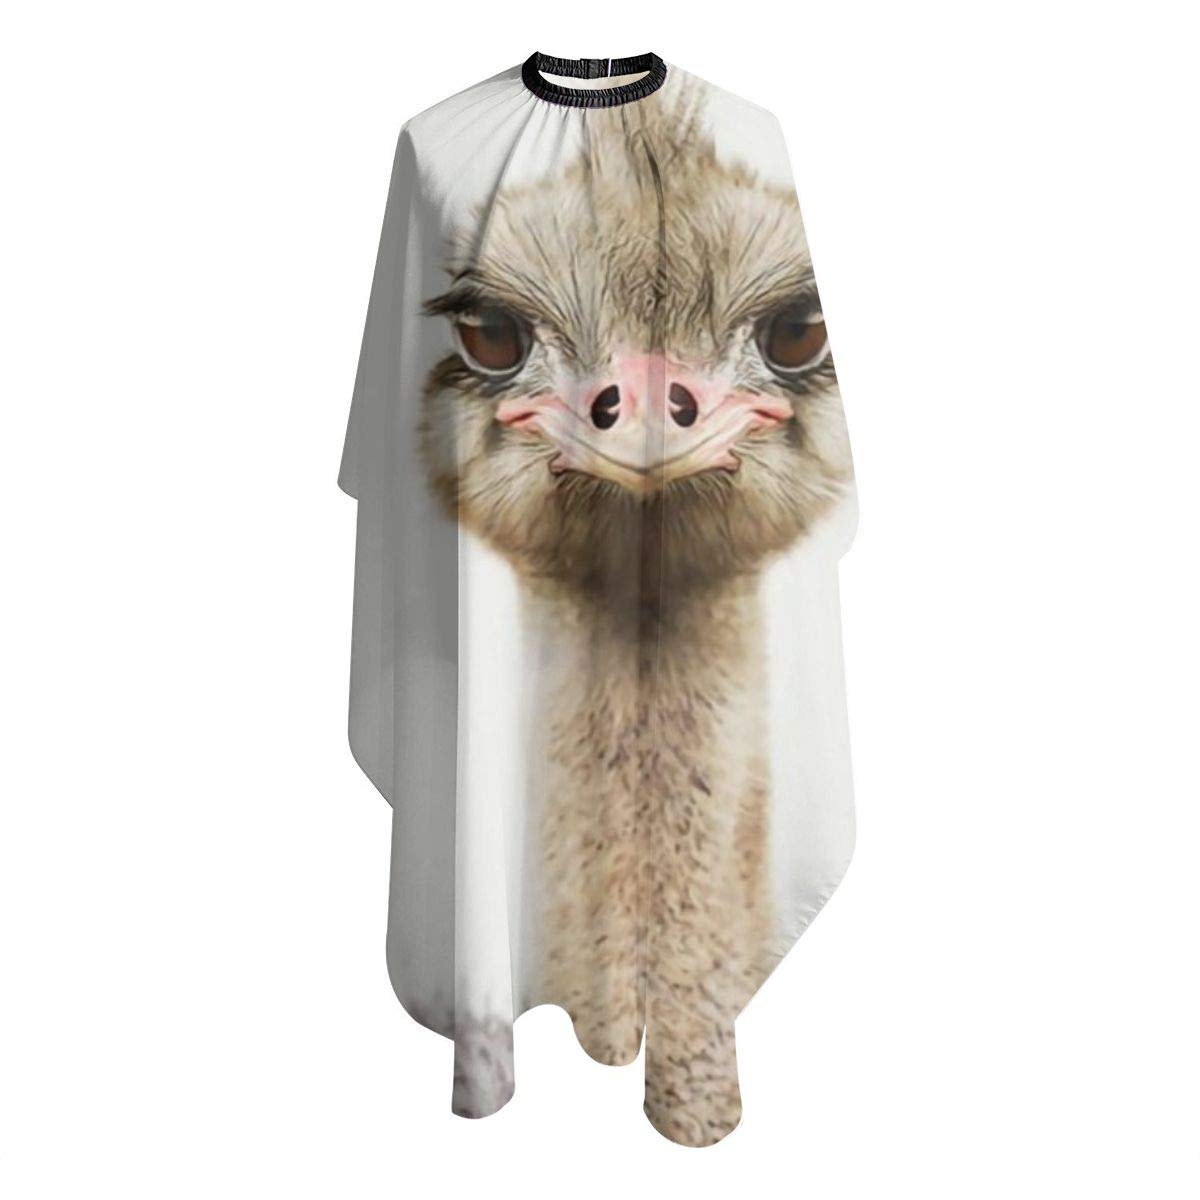 """Professional Barber Cape Salon Hair Styling Cutting Haircut Aprons Ostrich Print Animal Capes For Proof Hairdresser Coloring Perming Shampoo Chemical 55"""""""" X 66 : Beauty"""